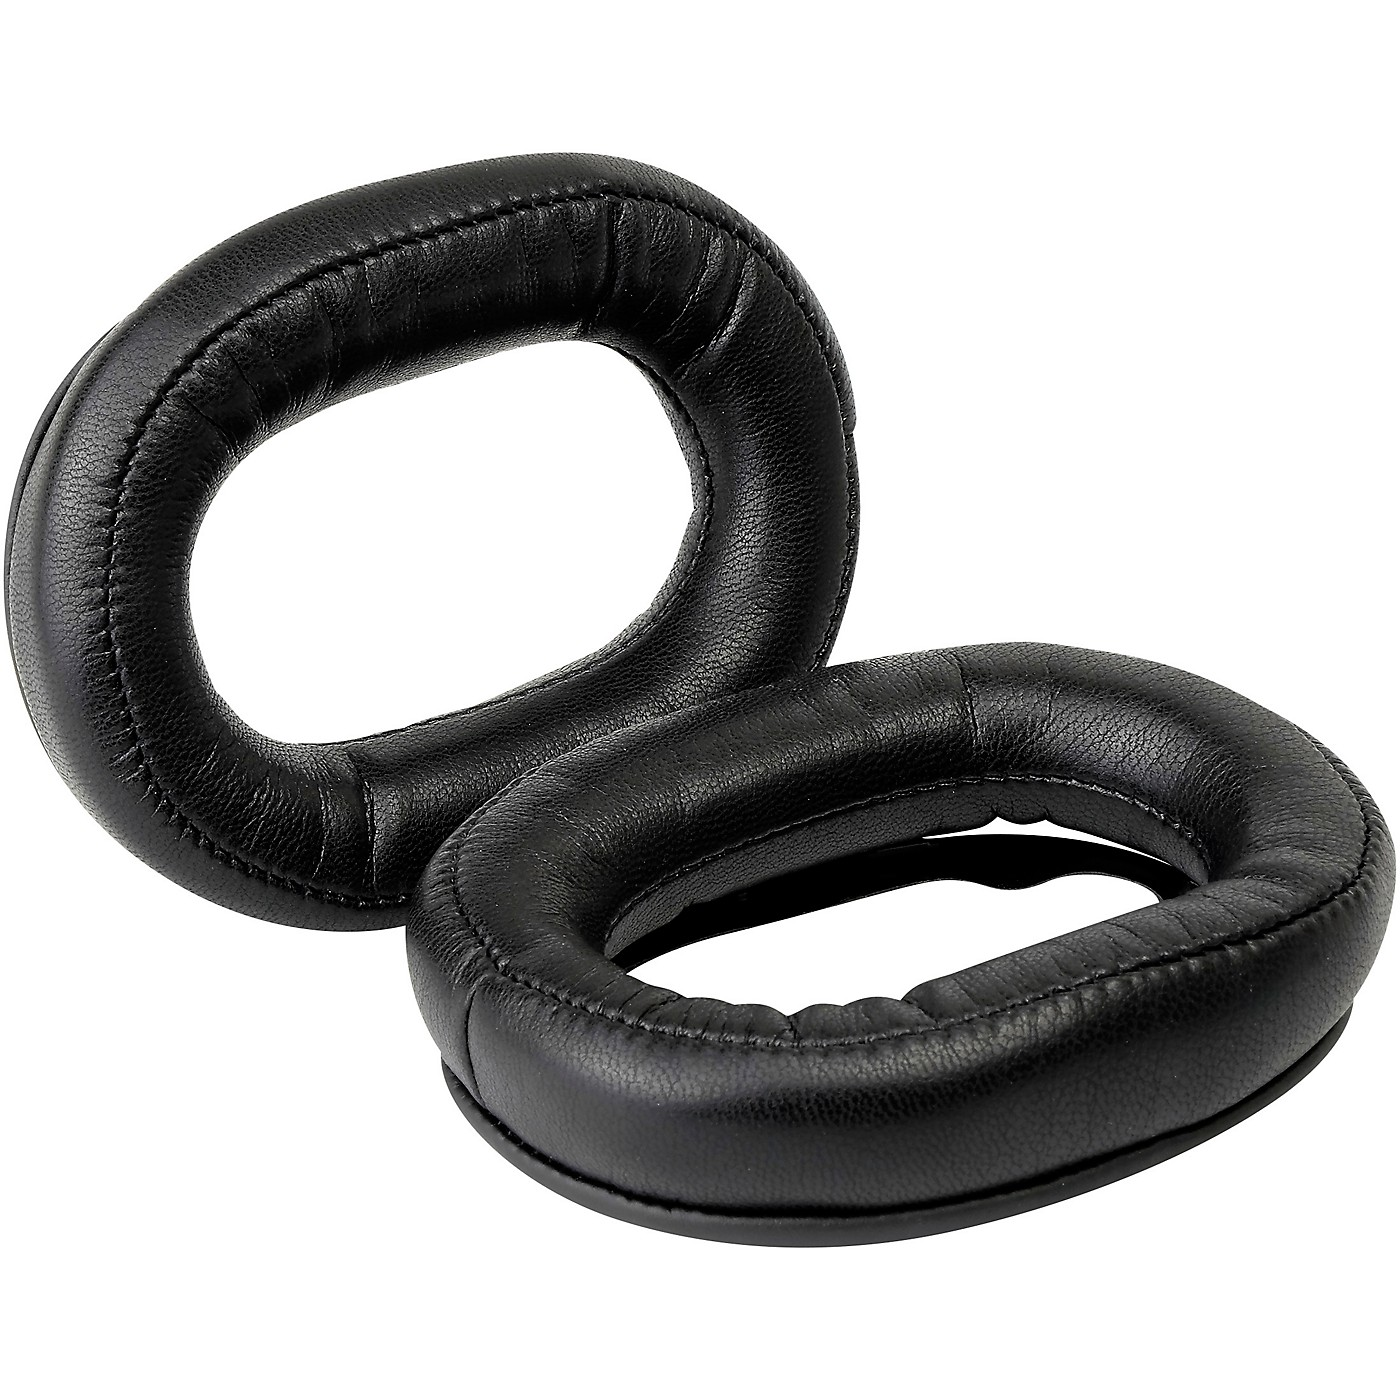 Dekoni Audio Replacement Earpads for Sony WH1000Xm2 Dekoni Choice Leather Material thumbnail